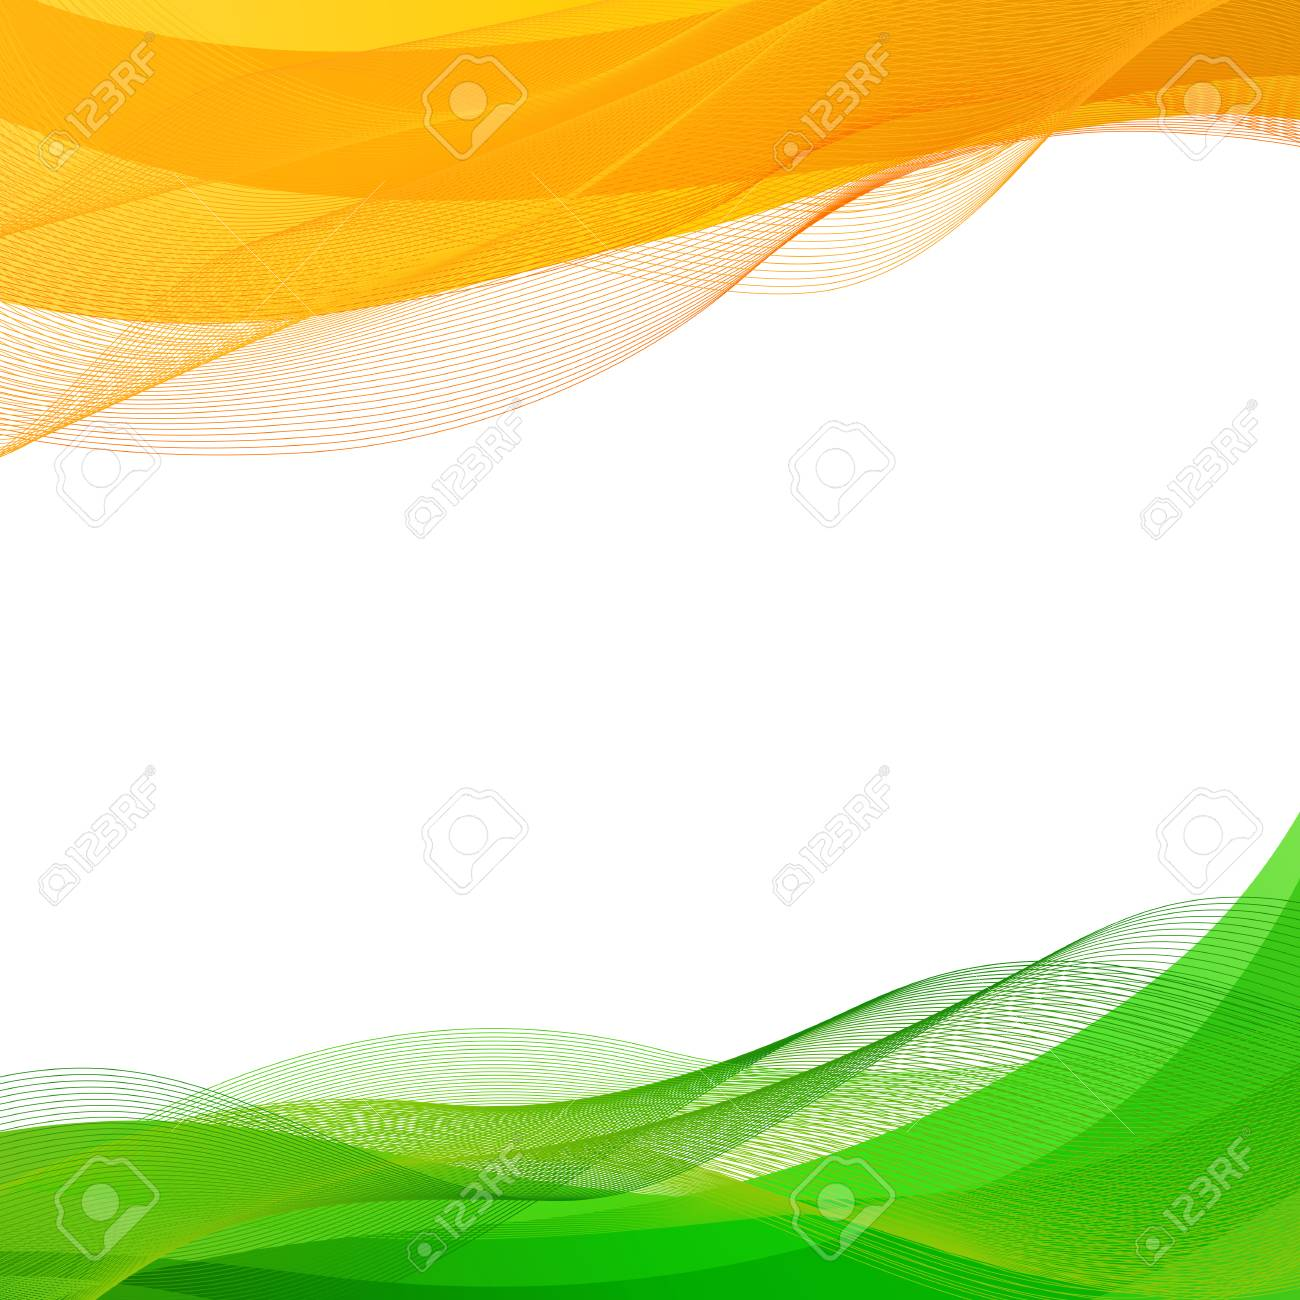 Happy Republic Day Of India Background Royalty Cliparts 1300x1300